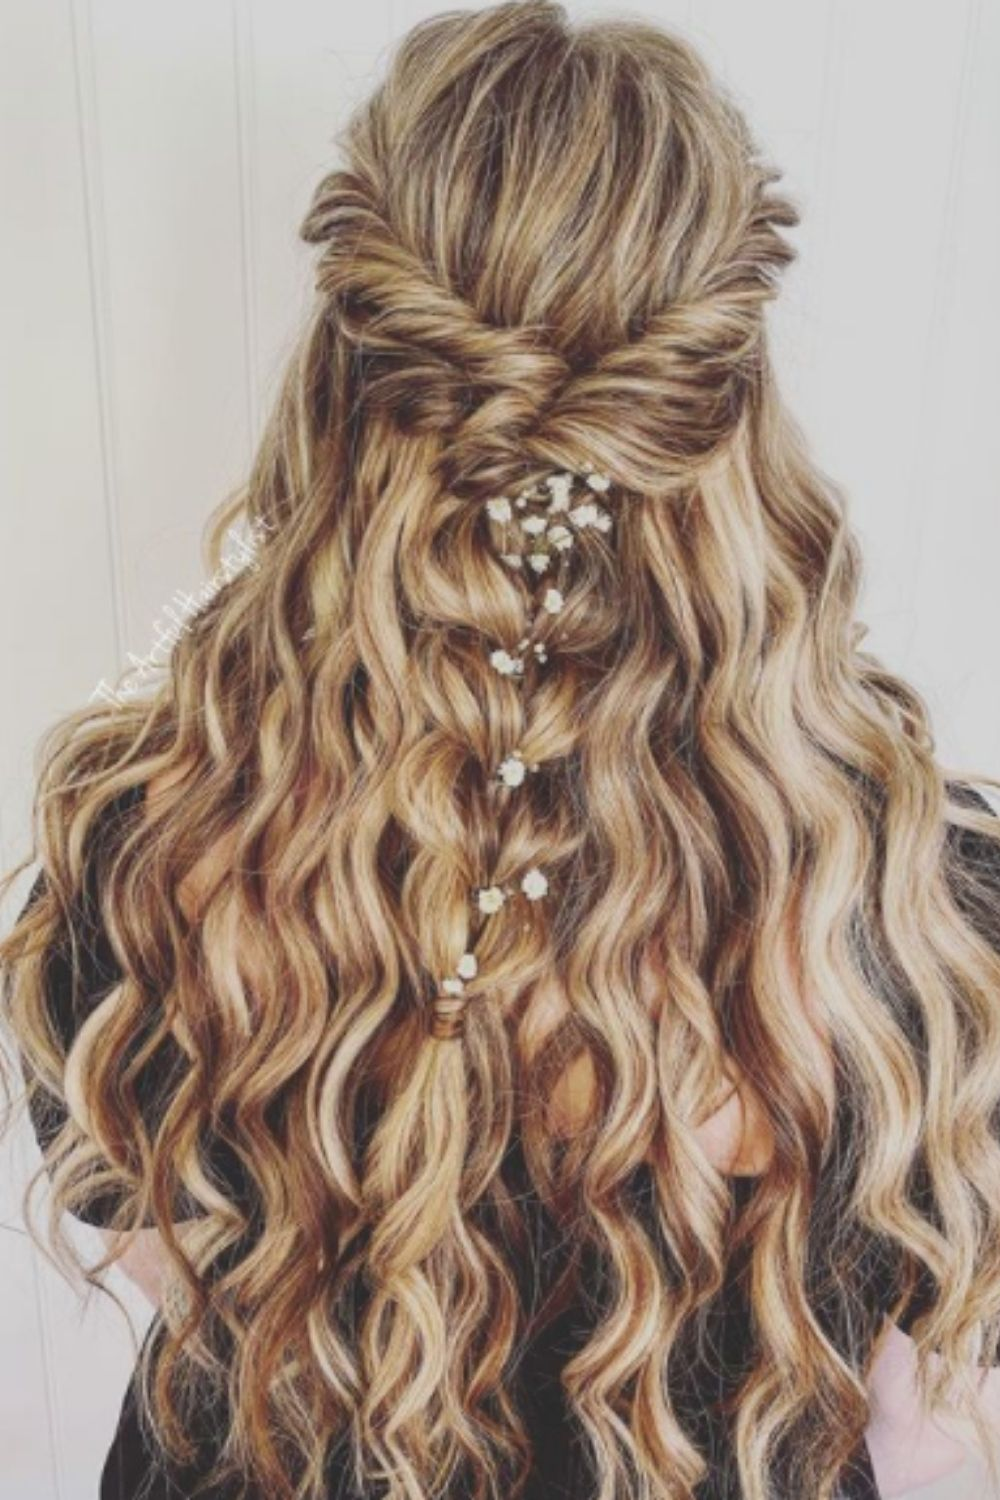 Retro Curls Long Hair For Homecoming Hairstyles For Girls!